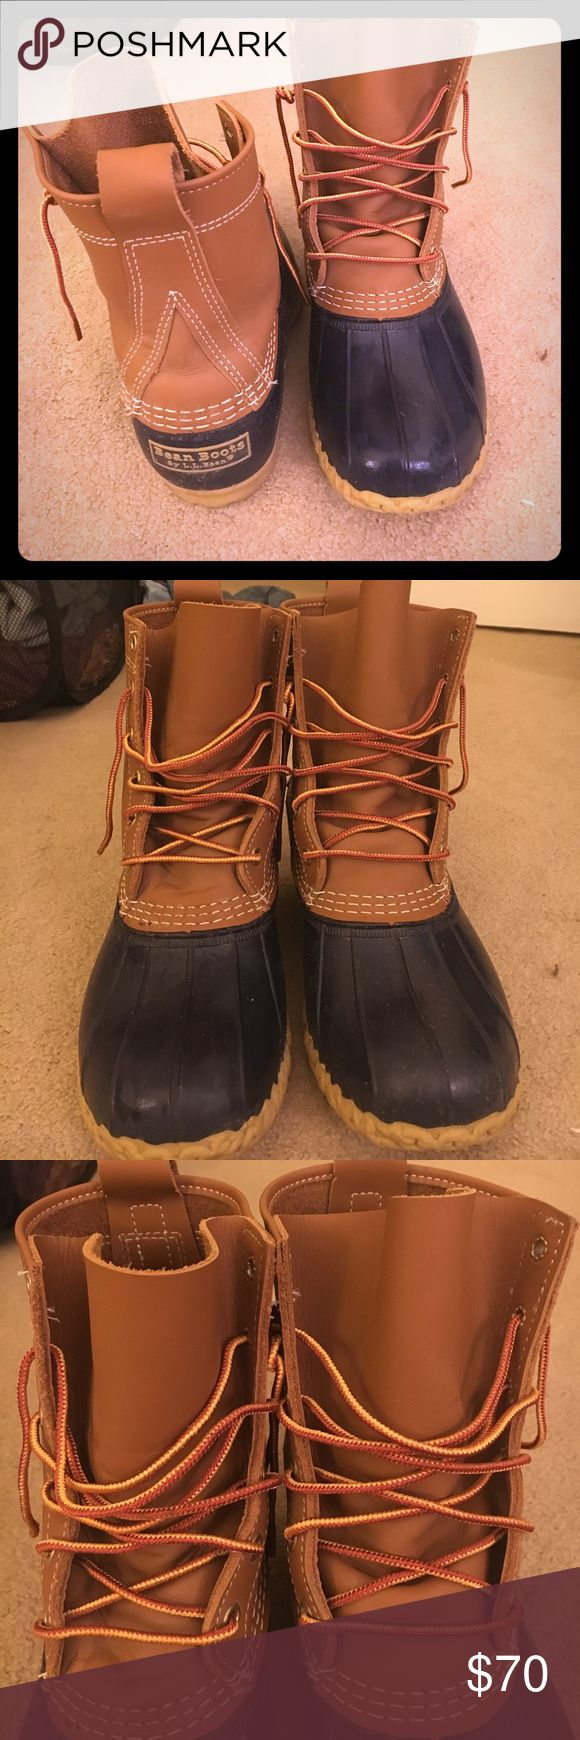 L.L Bean Women's Duck Boots Ll bean women's duck boots only worn once. In great condition! L.L. Bean Shoes Winter & Rain Boots